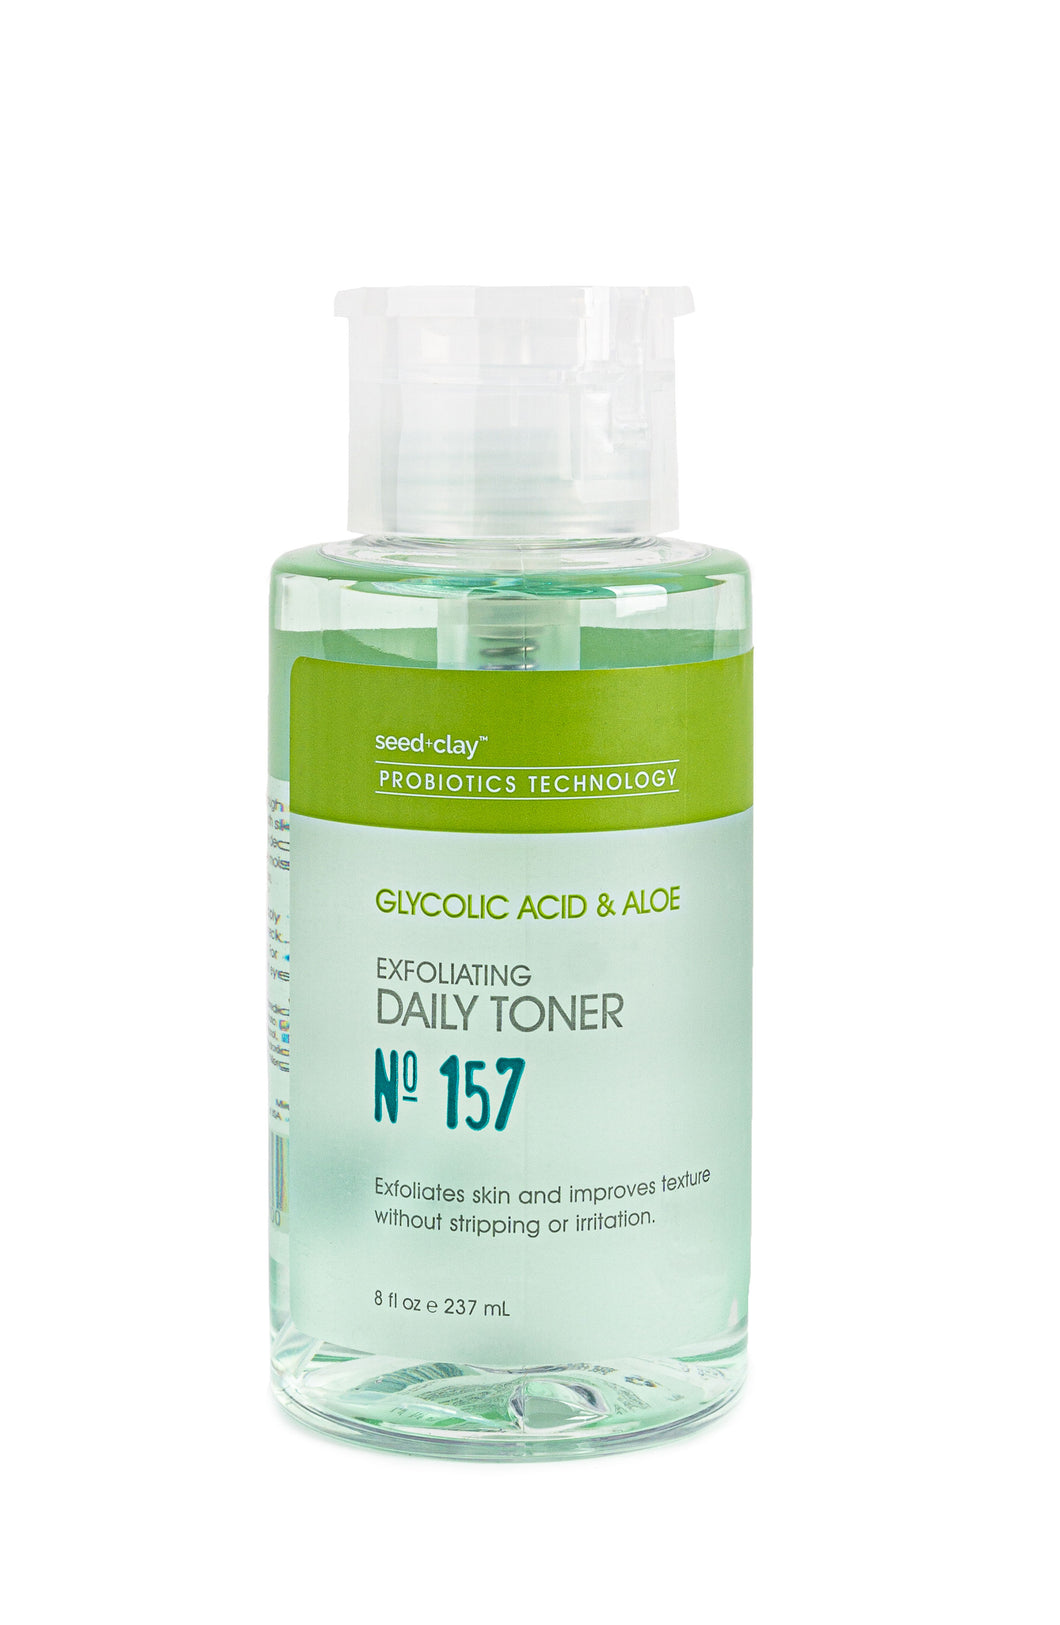 Exfoliating Glycolic Acid & Aloe Daily Toner